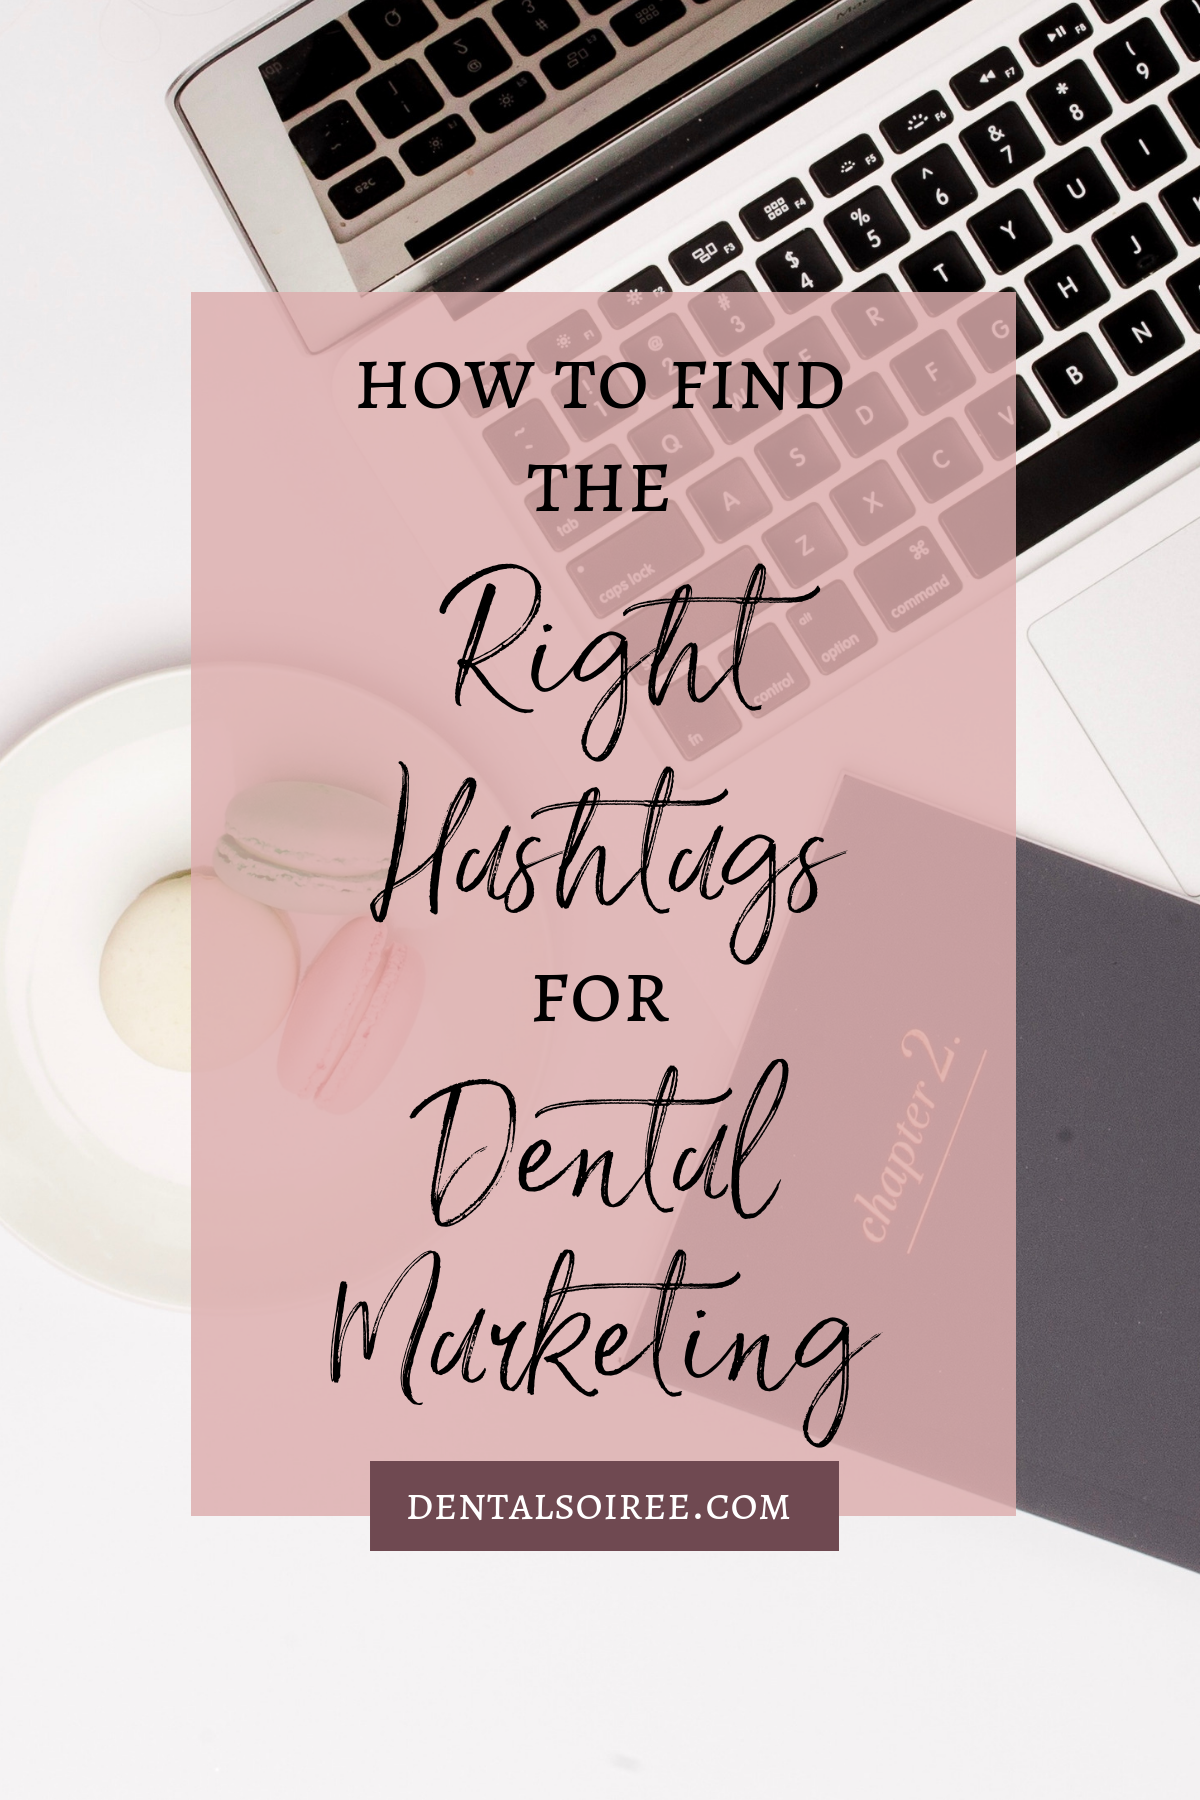 How to Find the Right Hashtags For Dental Marketing